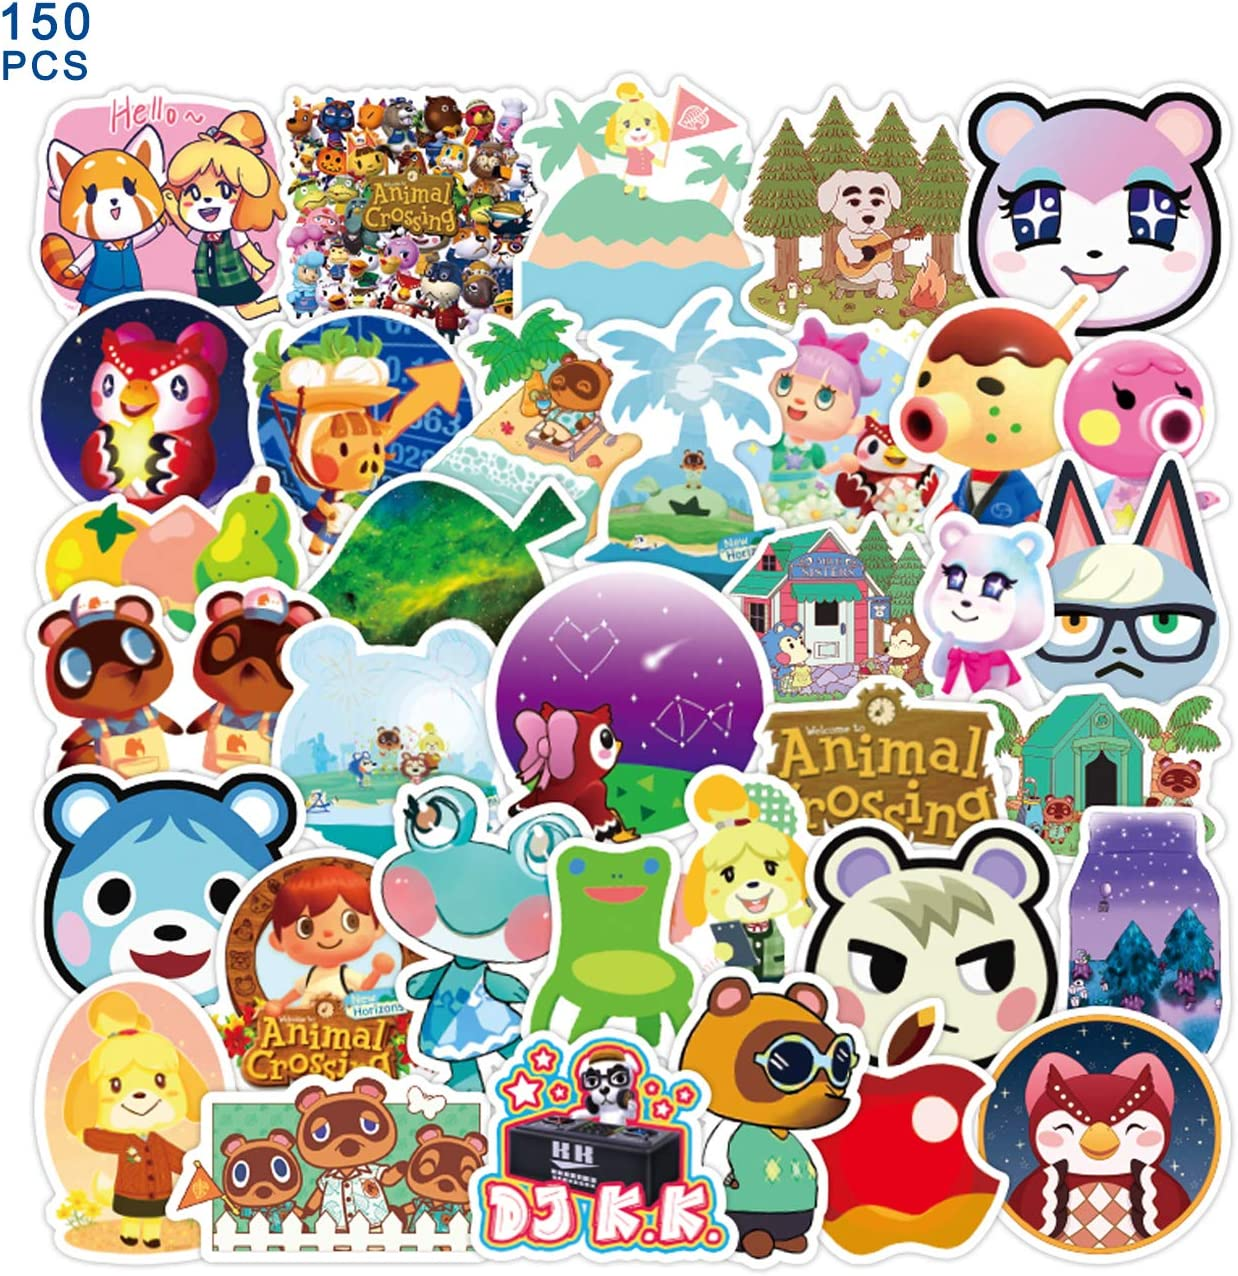 ACNH Stickers 50 PCs Animal Vinyl Waterproof Stickers Crossing Pack for Teens Adults on Water Bottle